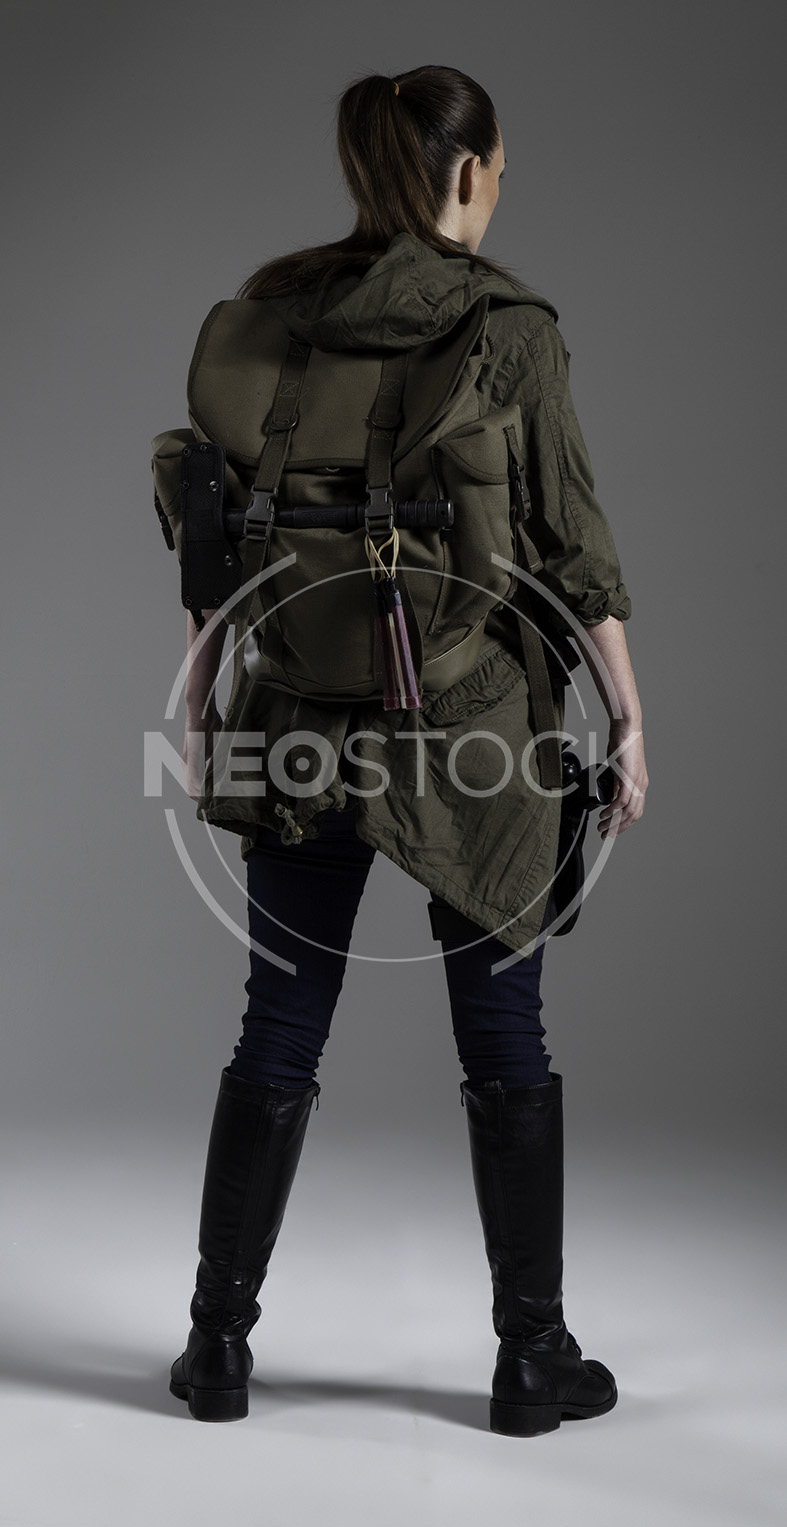 NeoStock - Donna Post Apoc III - Stock Photography